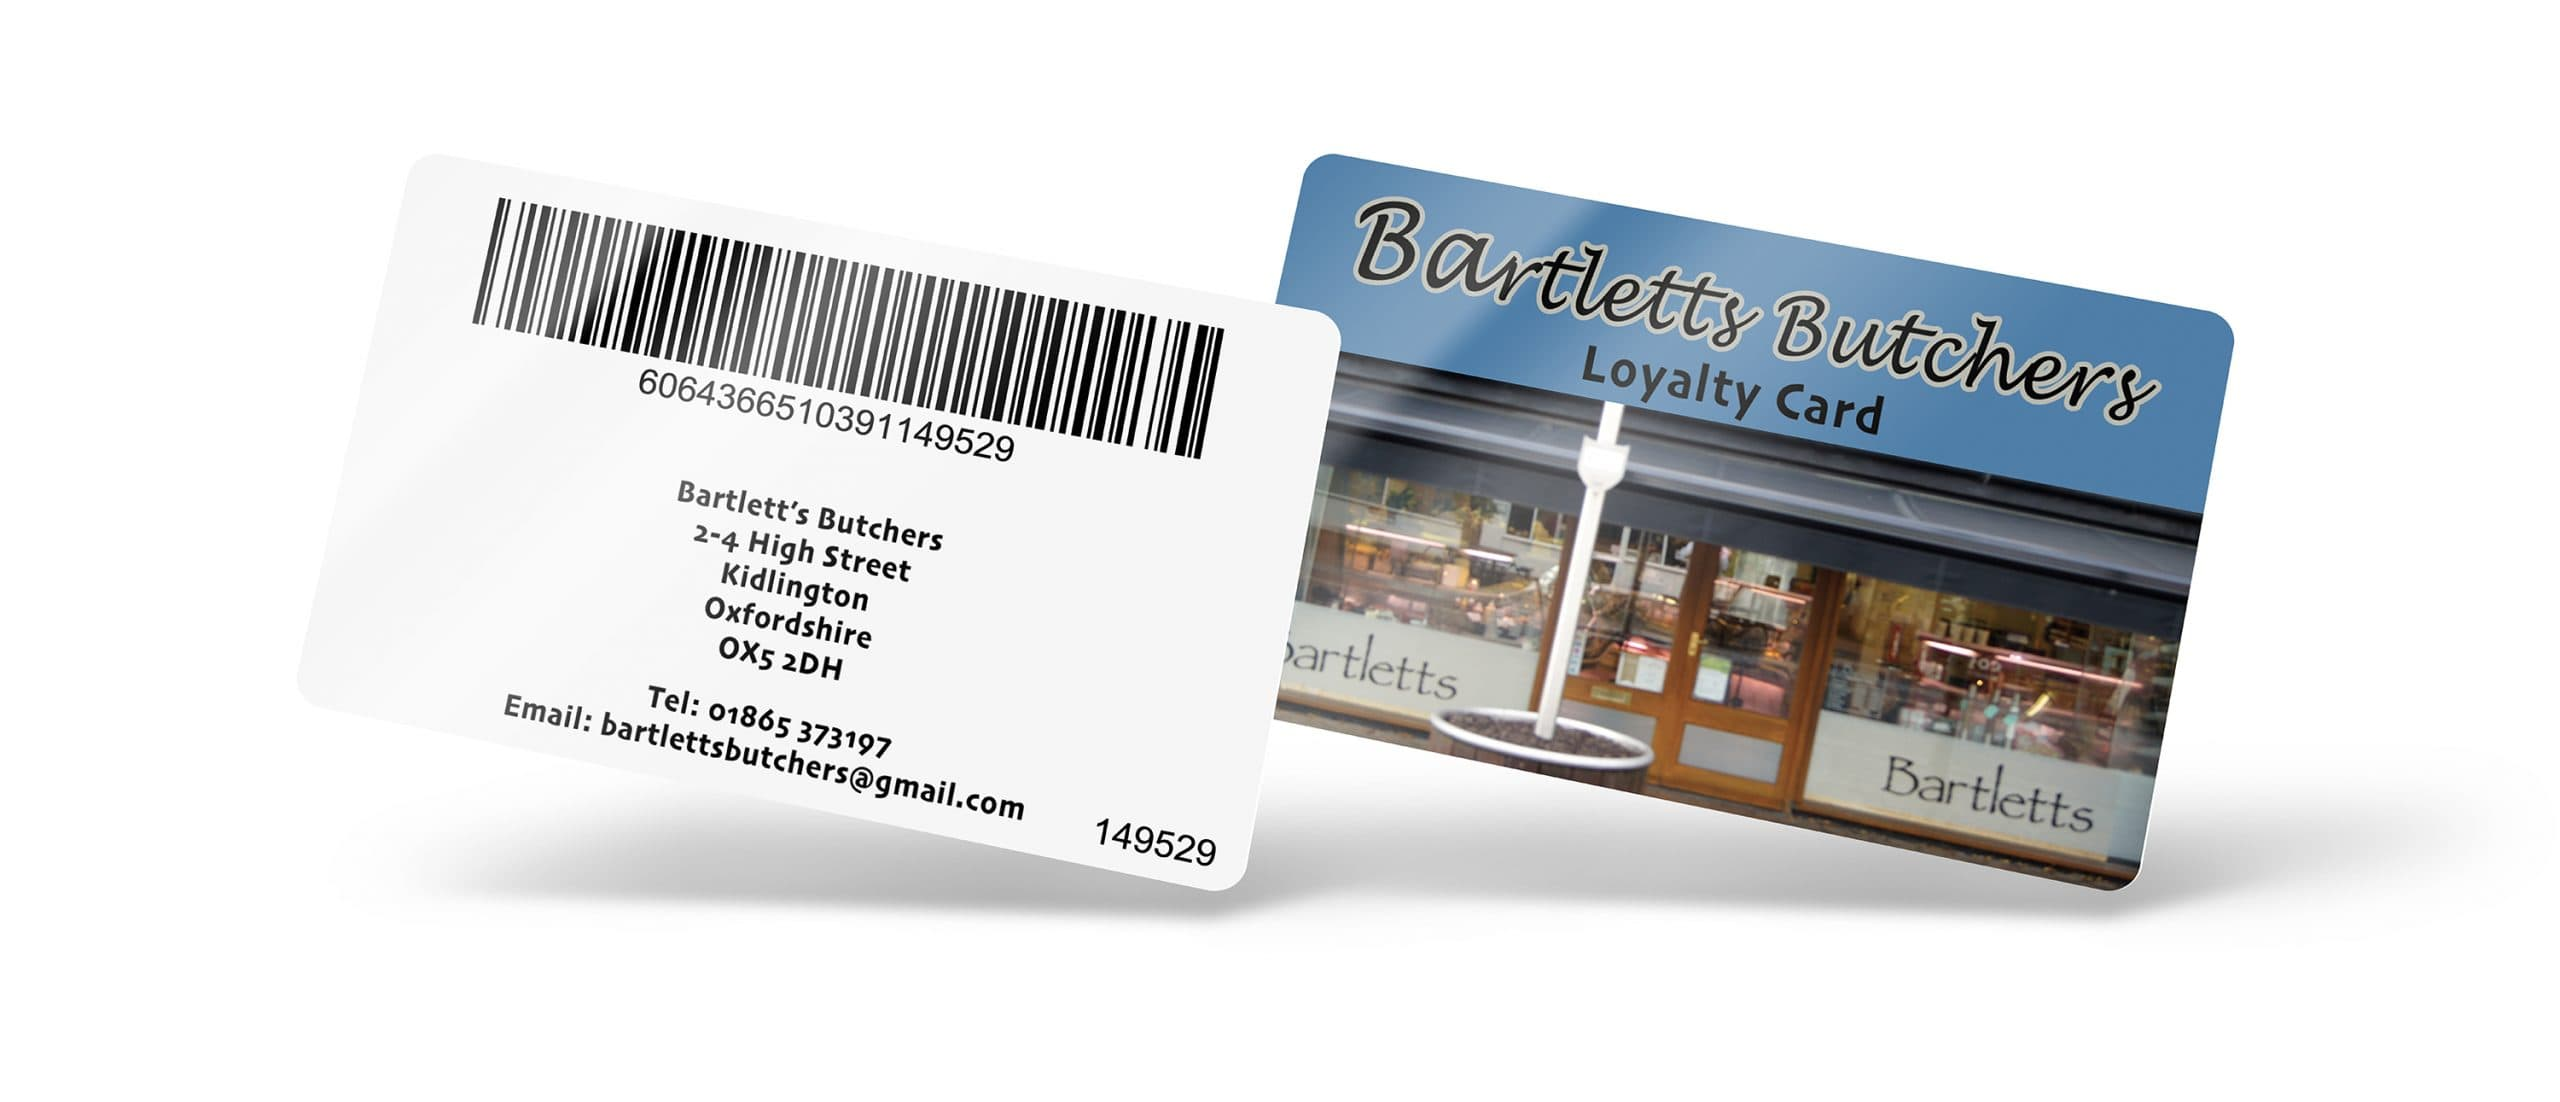 Bartlett's Butchers Loyalty Cards